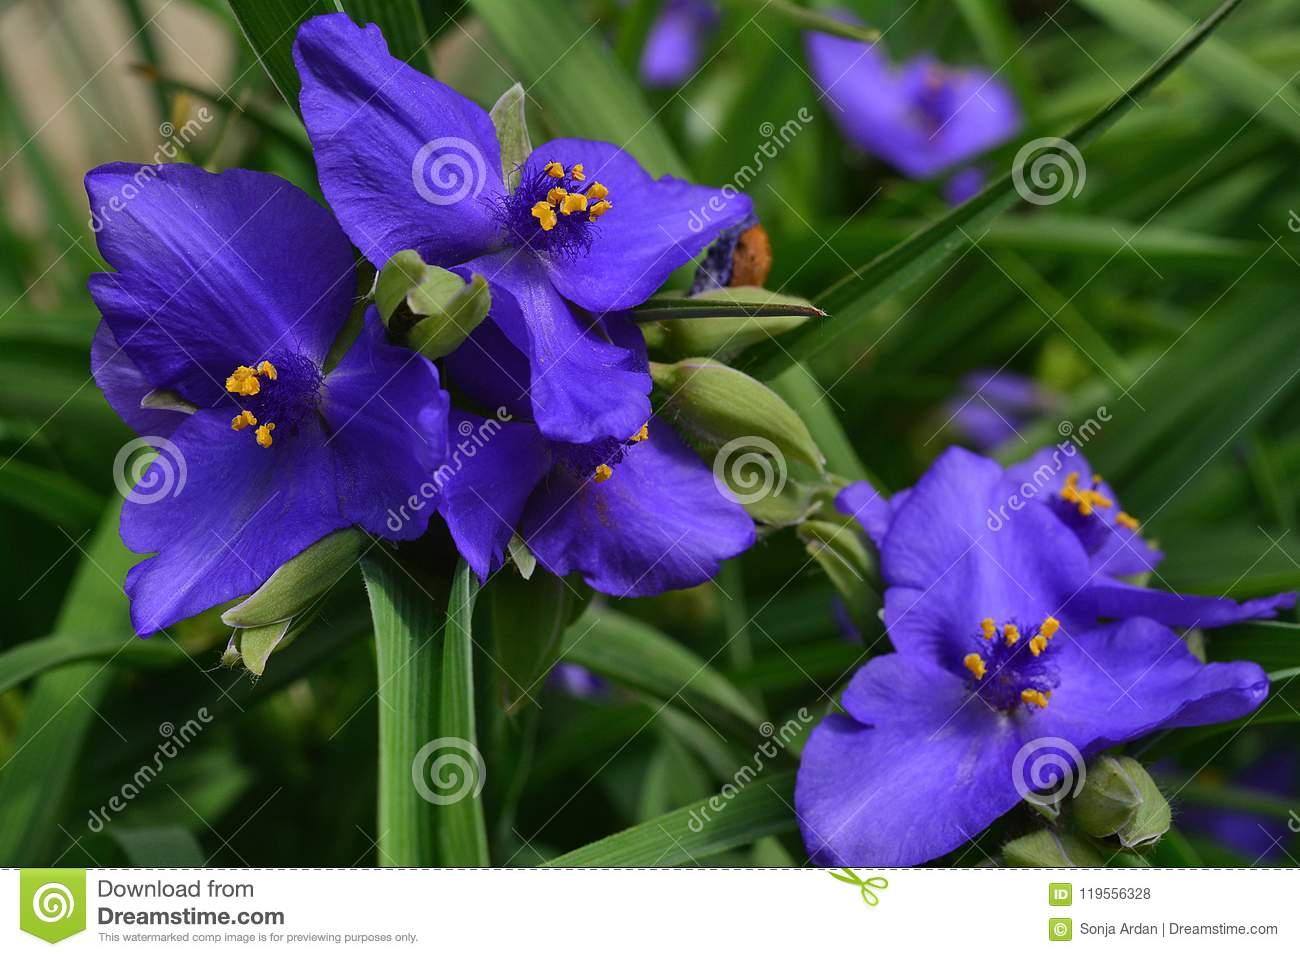 Group Of Fresh Purple Flower In A Green Ambience Stock Photo Image